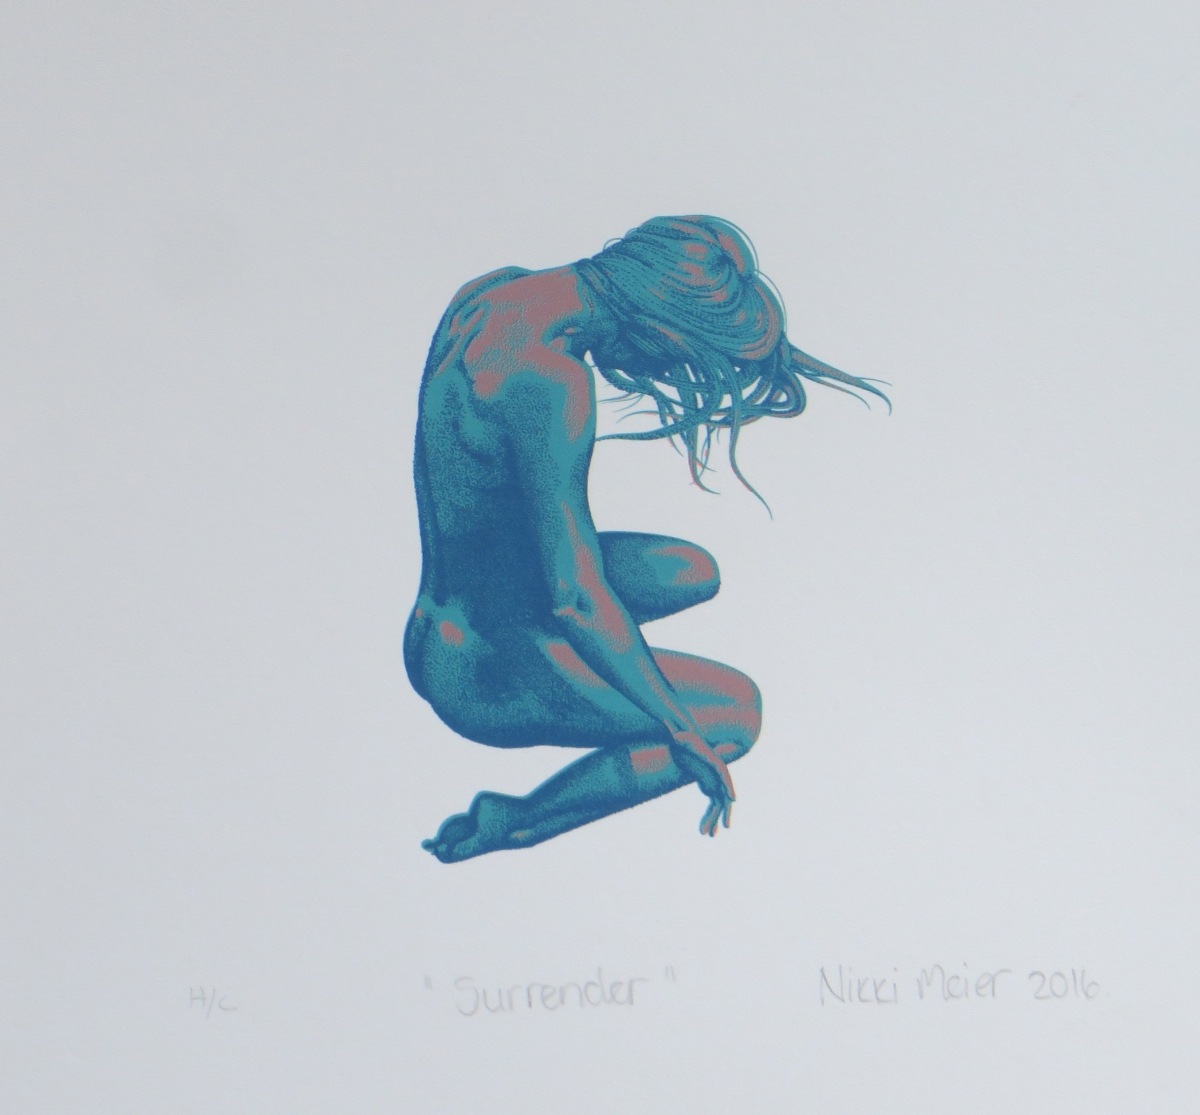 Surrender   Nikki Meier  Silkscreen  335 x 335 mm  Edition of 20  R 1 340.00 excl. vat